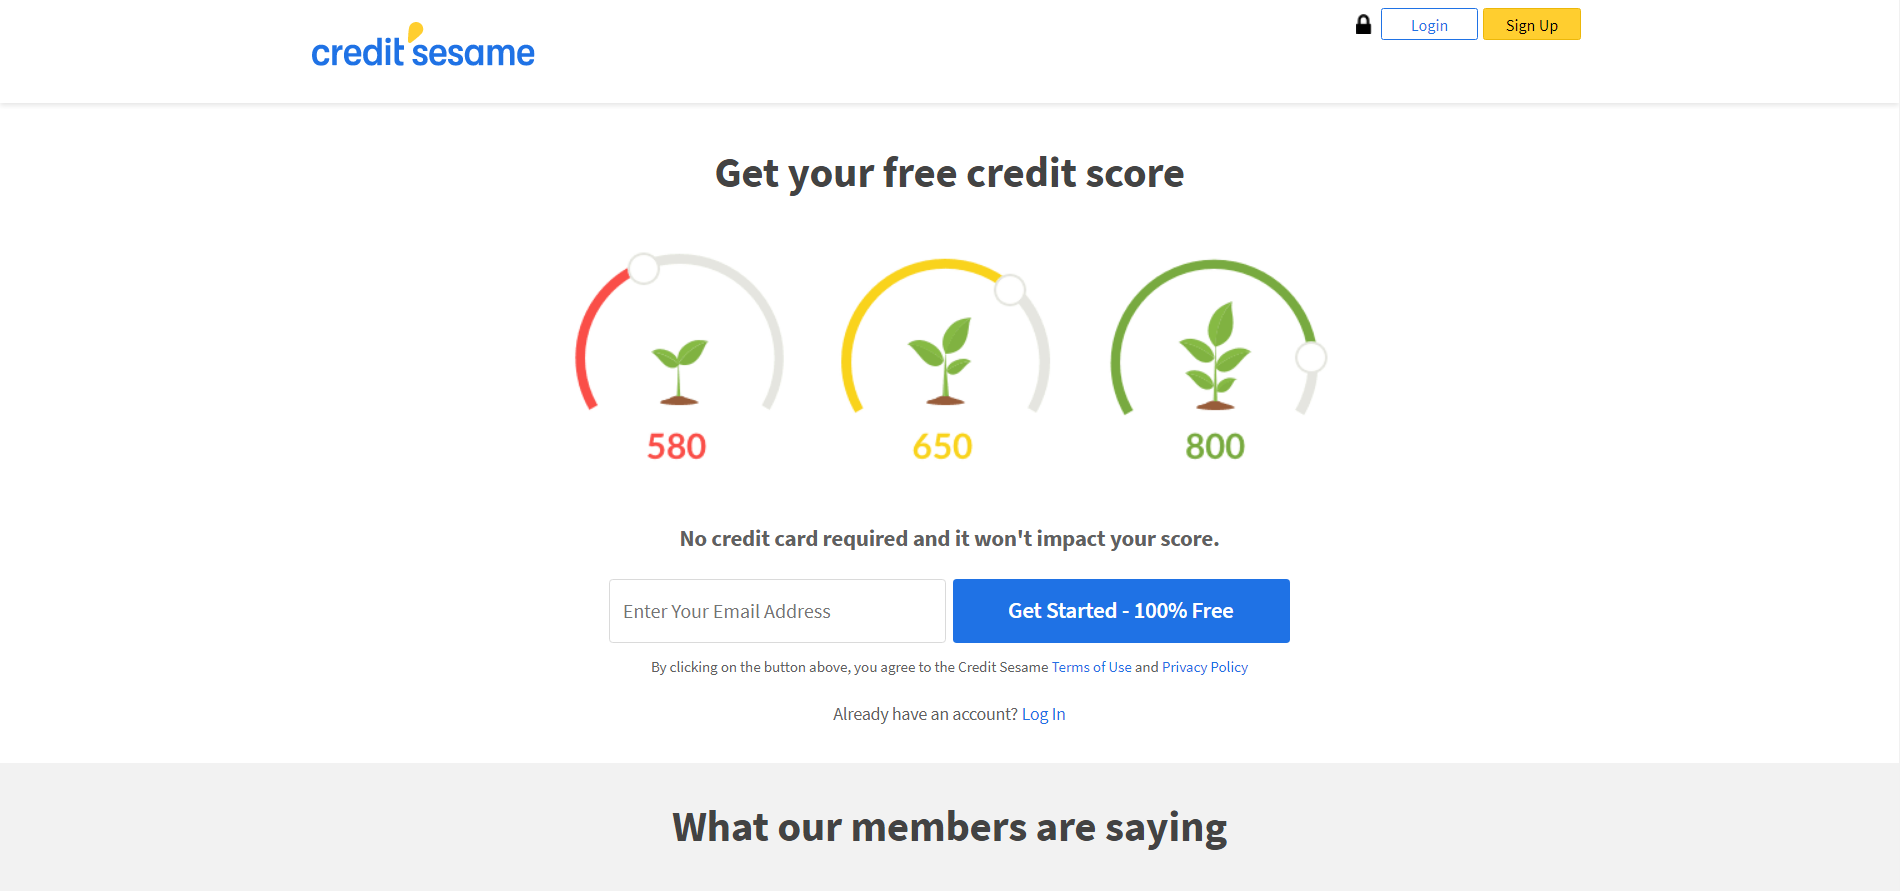 A screenshot of the Credit Sesame website homepage.